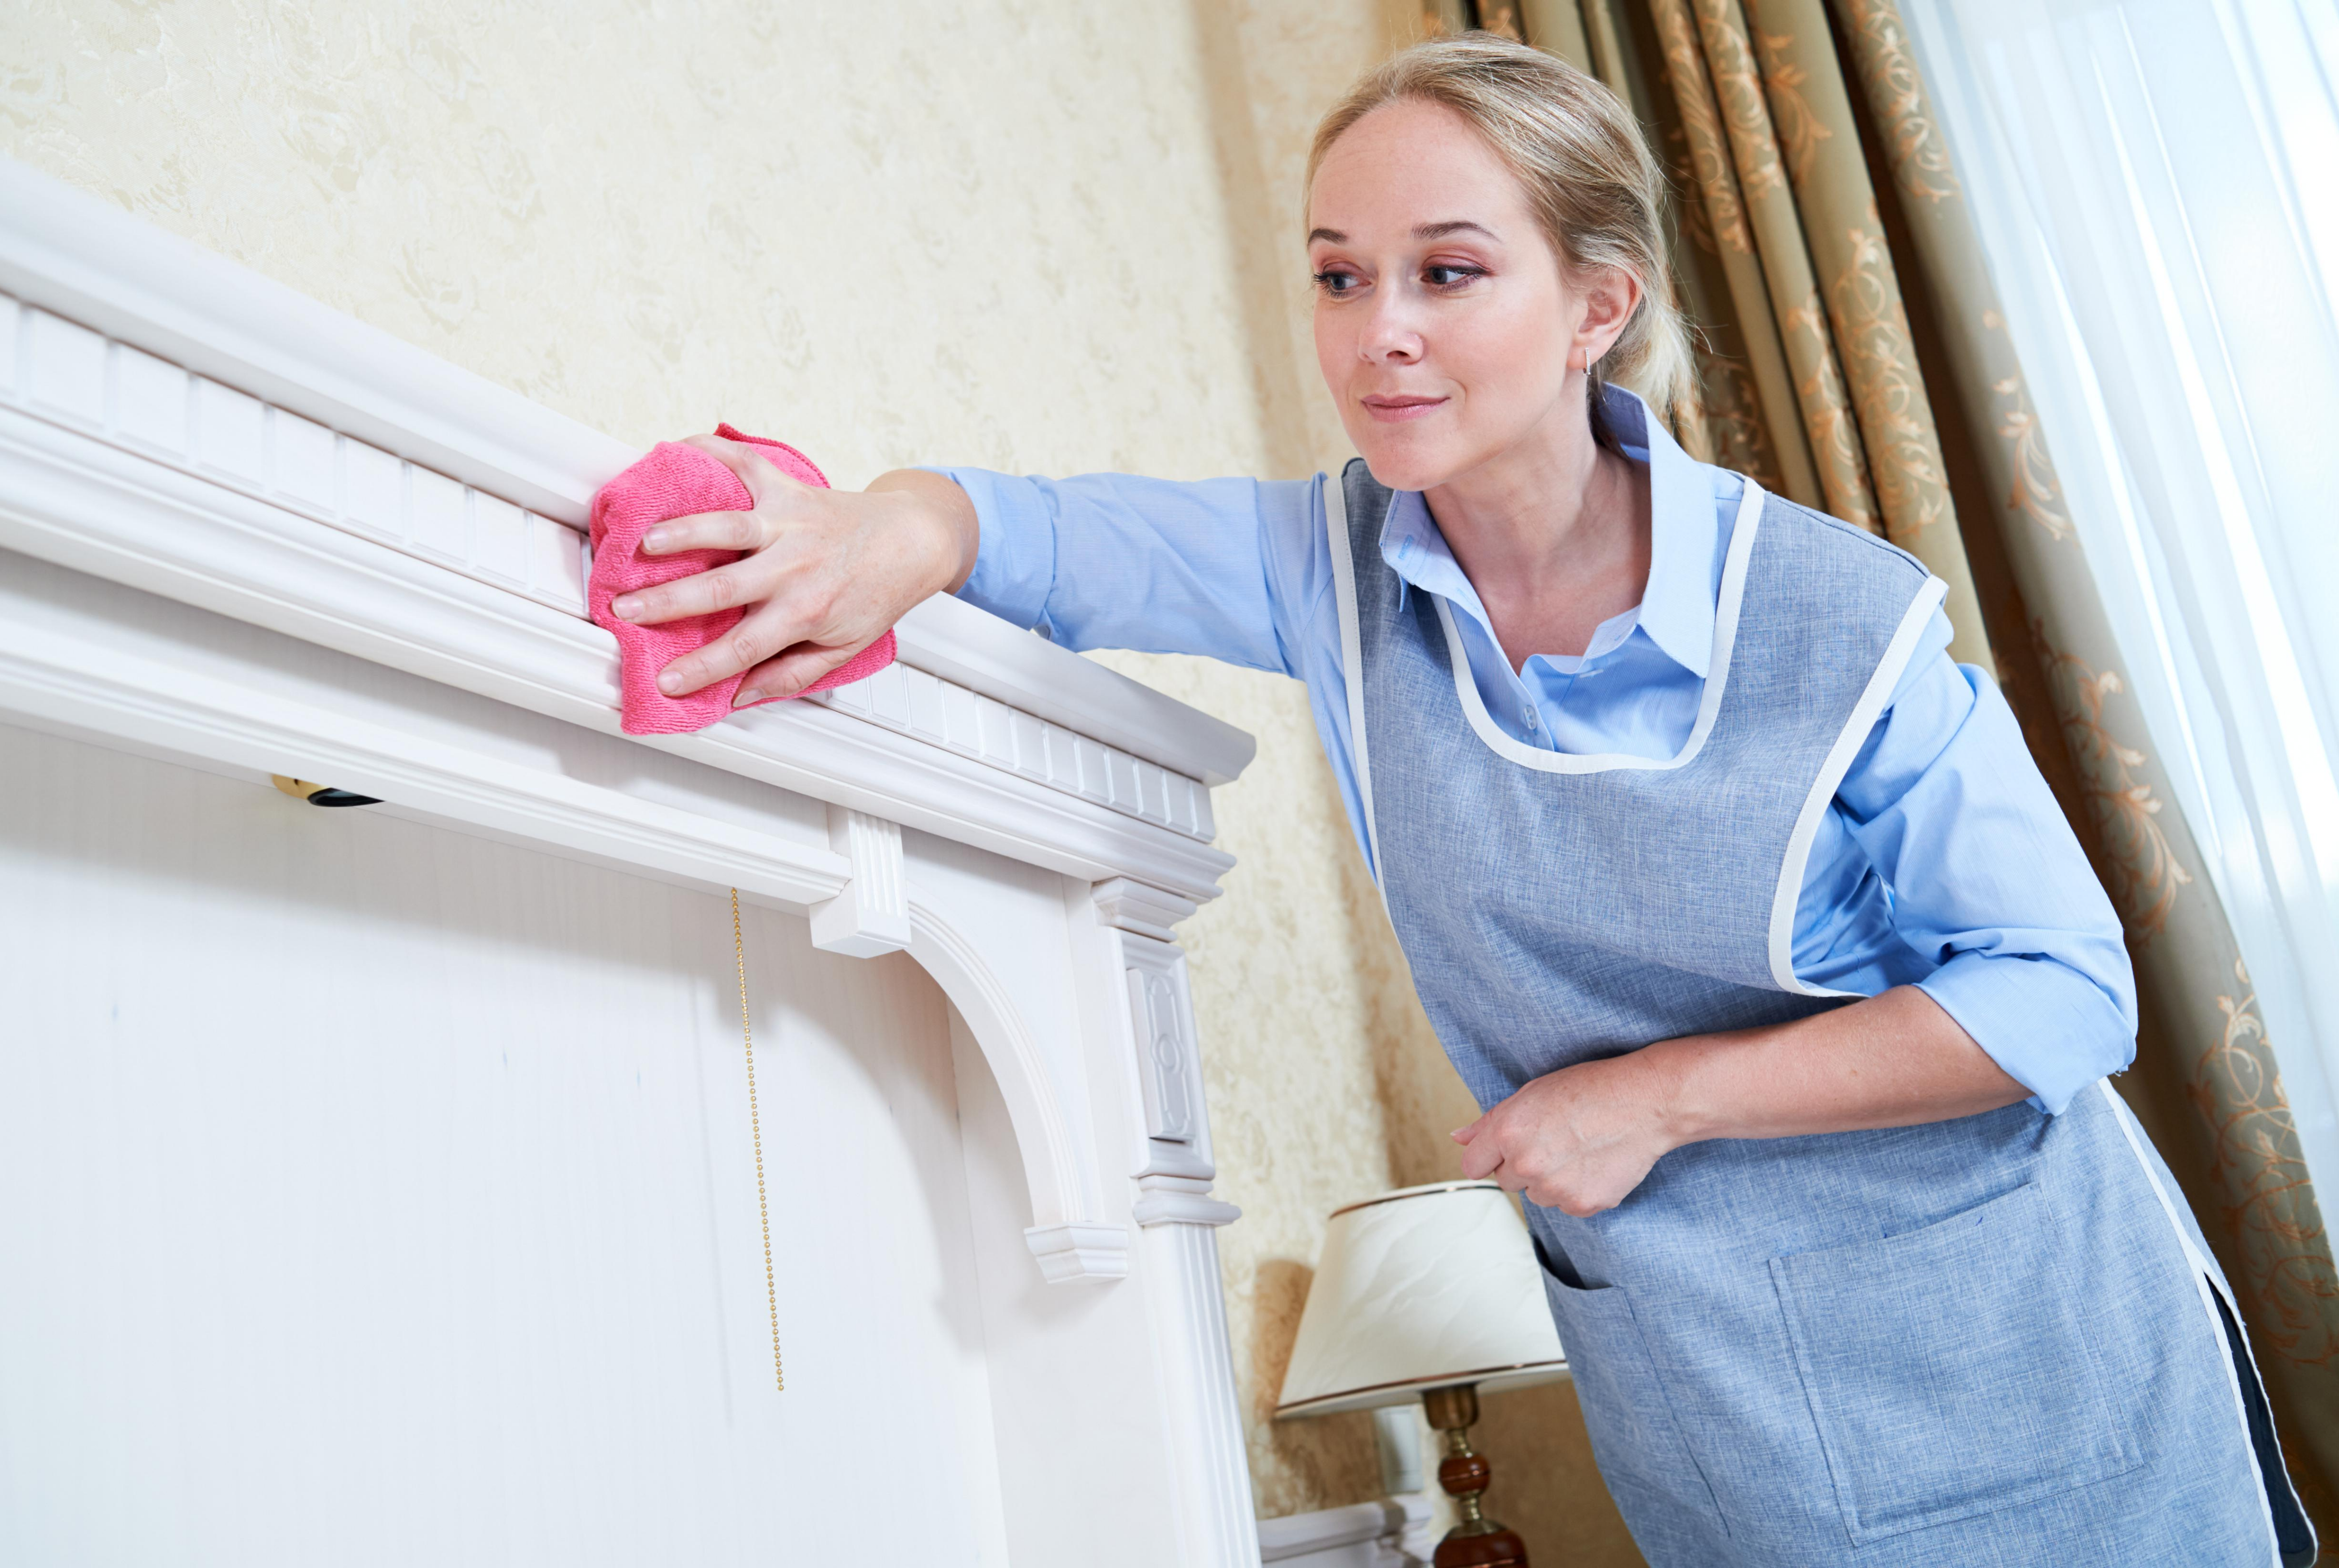 Living room cleaning services in Barnet